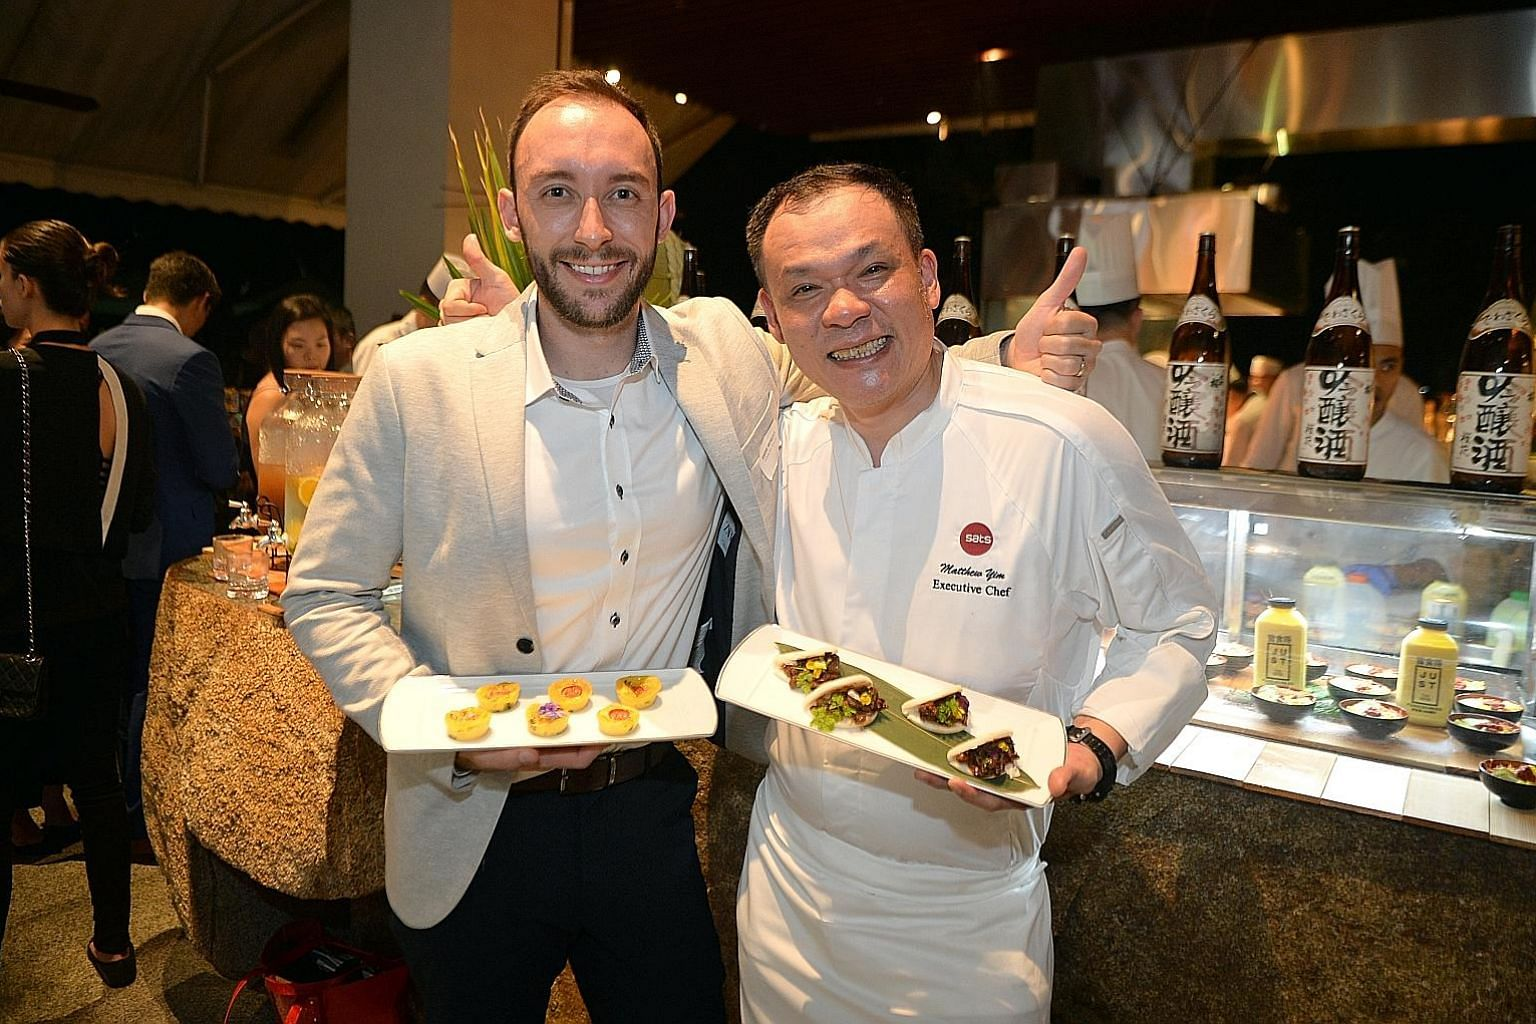 """Country Foods general manager Andre Menezes with a plate of Just egg frittata and Sats' executive chef Matthew Yim with """"char siew marinated Good Dot Proteiz on bun"""". The dishes were showcased on Thursday."""